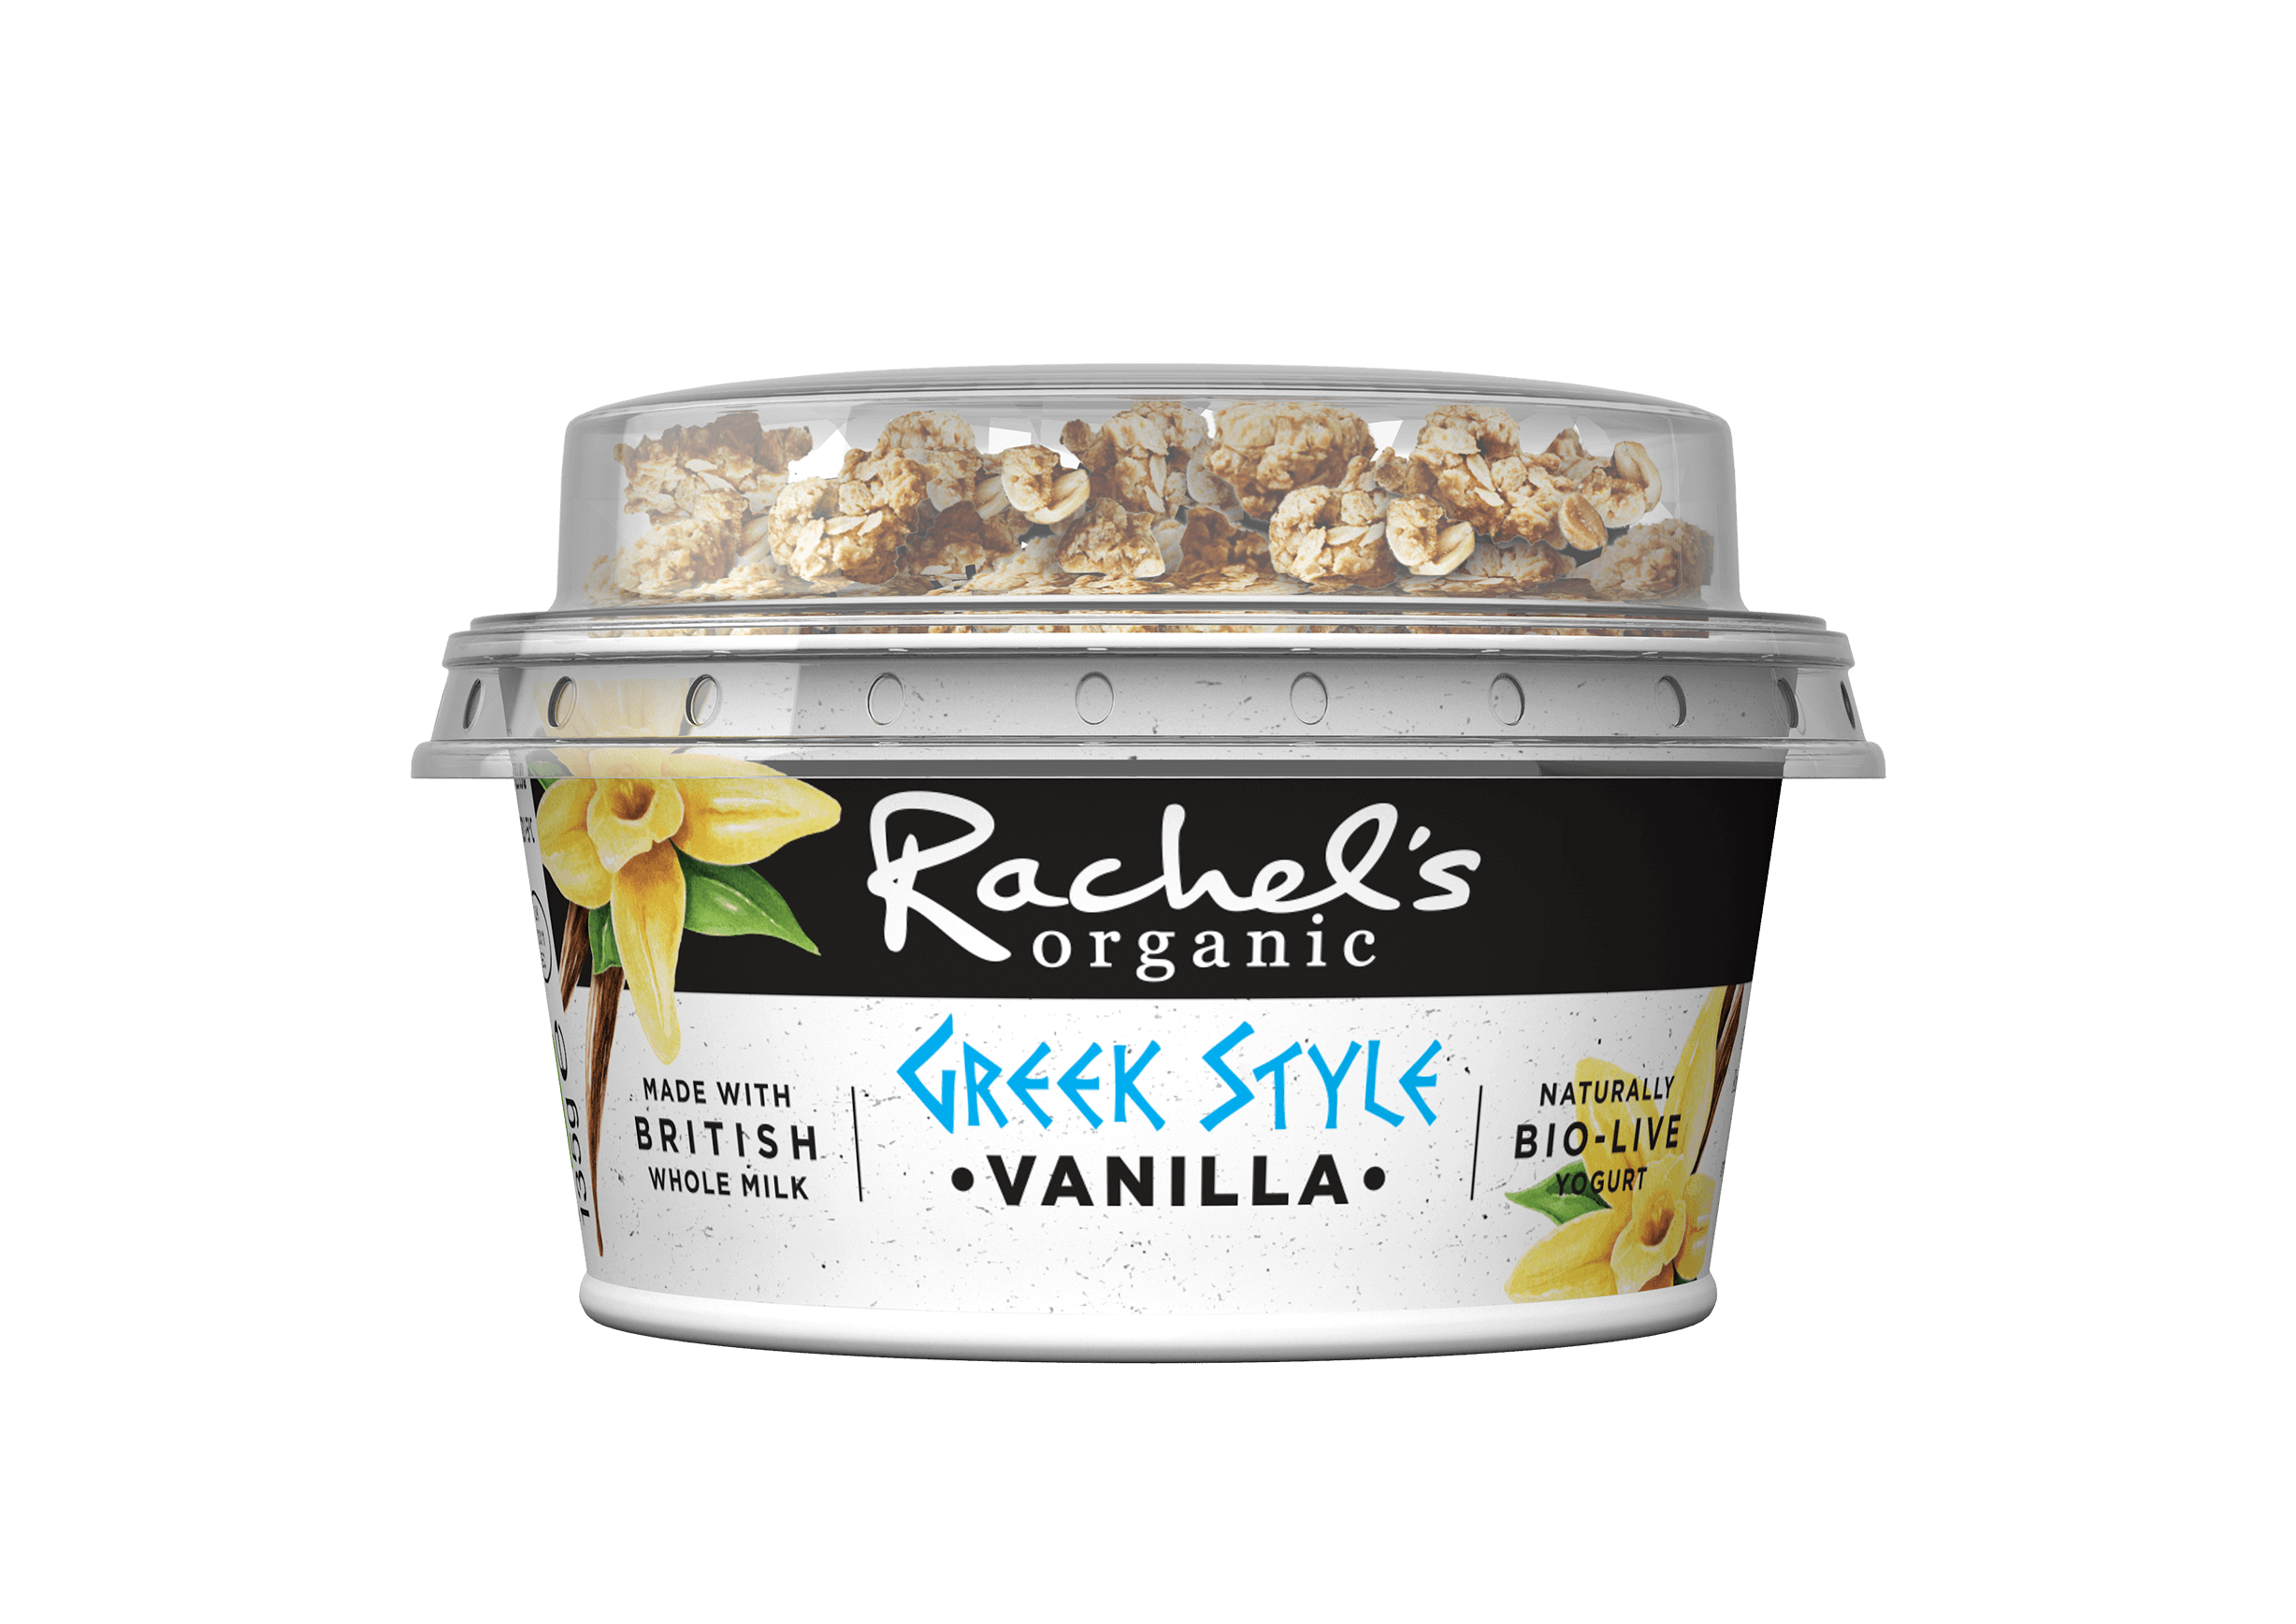 https://www.rachelsorganic.co.uk/wp-content/uploads/2019/12/5021638001103-3D-RACHELS-135G-POT-GREEK-STYLE-VANILLA.png